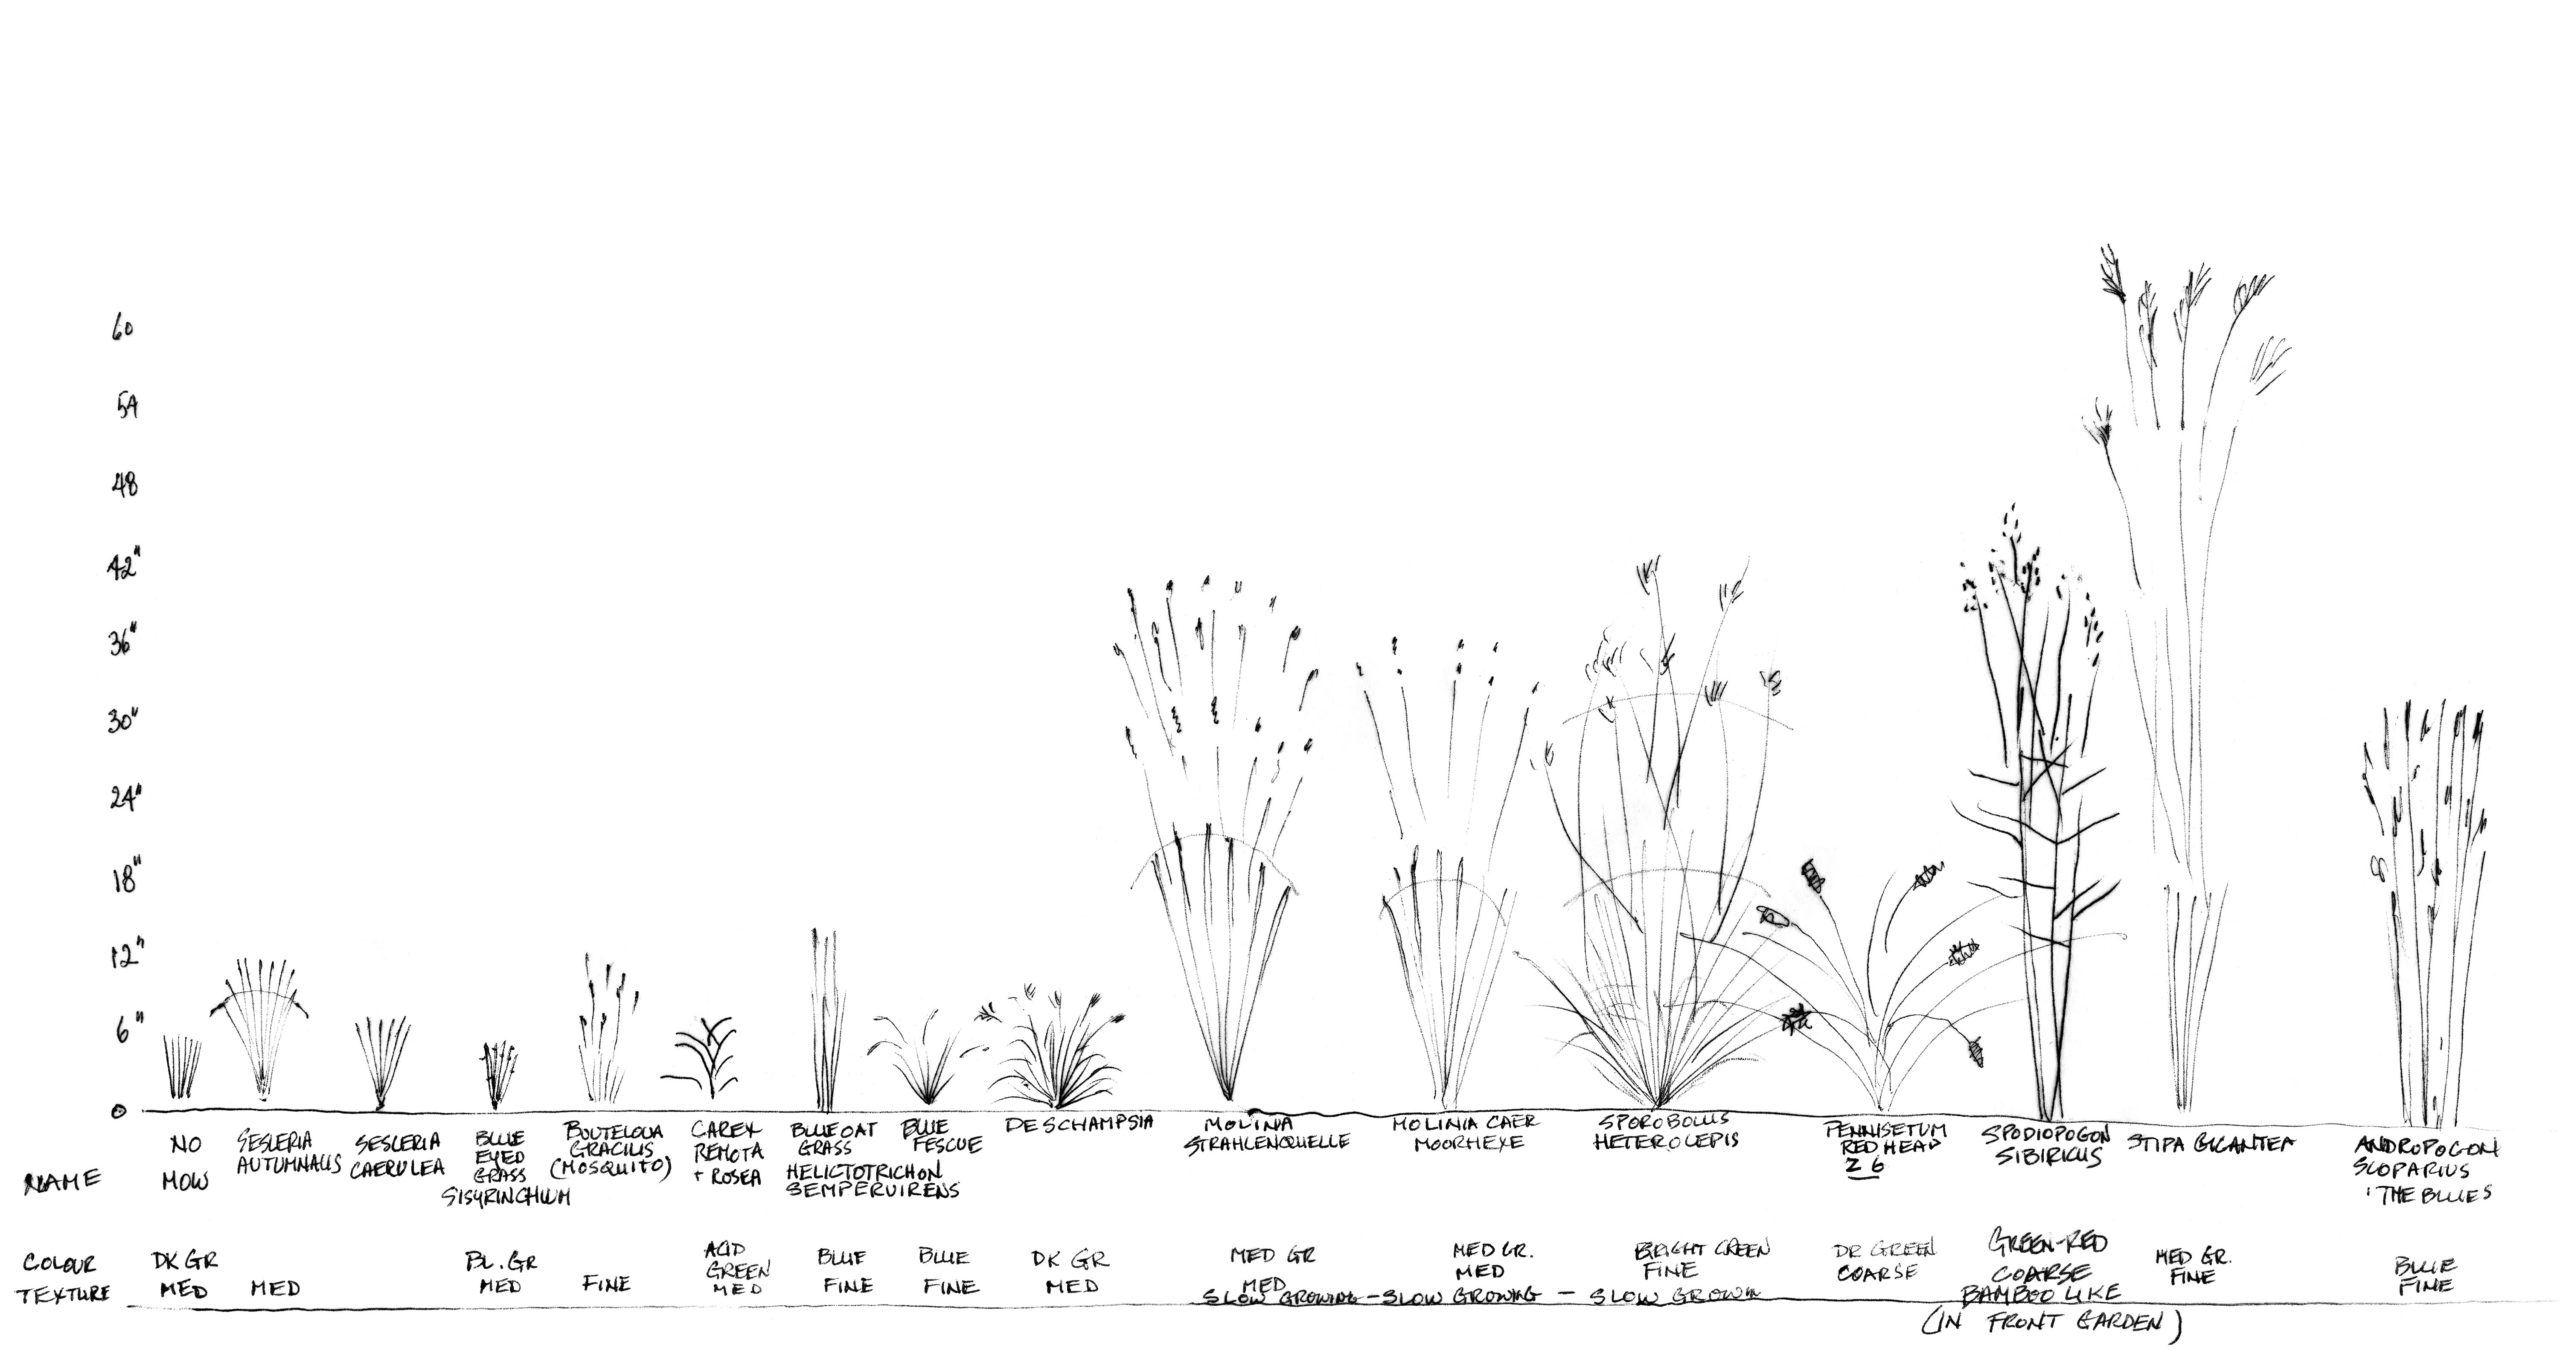 Misha's handdrawn legend of the grasses in her garden. Click for full size drawing.